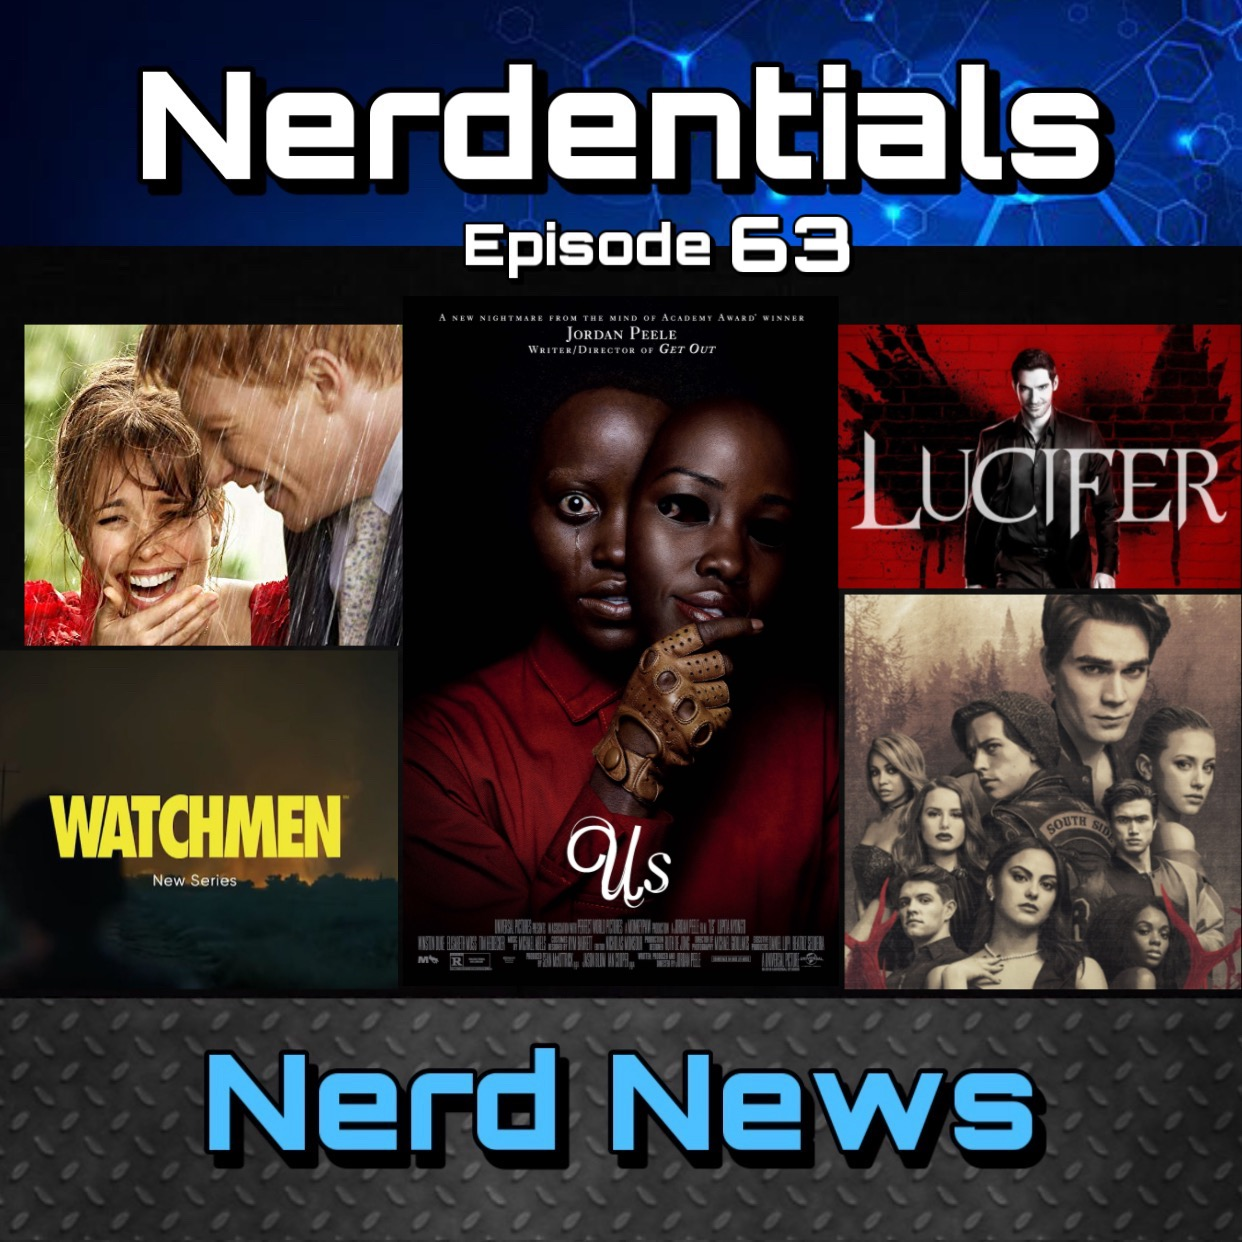 - Welcome to Nerdentials! Your weekly dose of the nerdy essentials. Covering Film, TV, Video Games and Comics.This week your Nerdy Hosts, Joe and Matt fly the nerd ship of conversation. We kick things off with a review of Jordan Peele's Horror/Thriller, Us....Then Joe delivers a throw back movie review on the Donald Gleeson and Rachel McAdams Rom-Com,